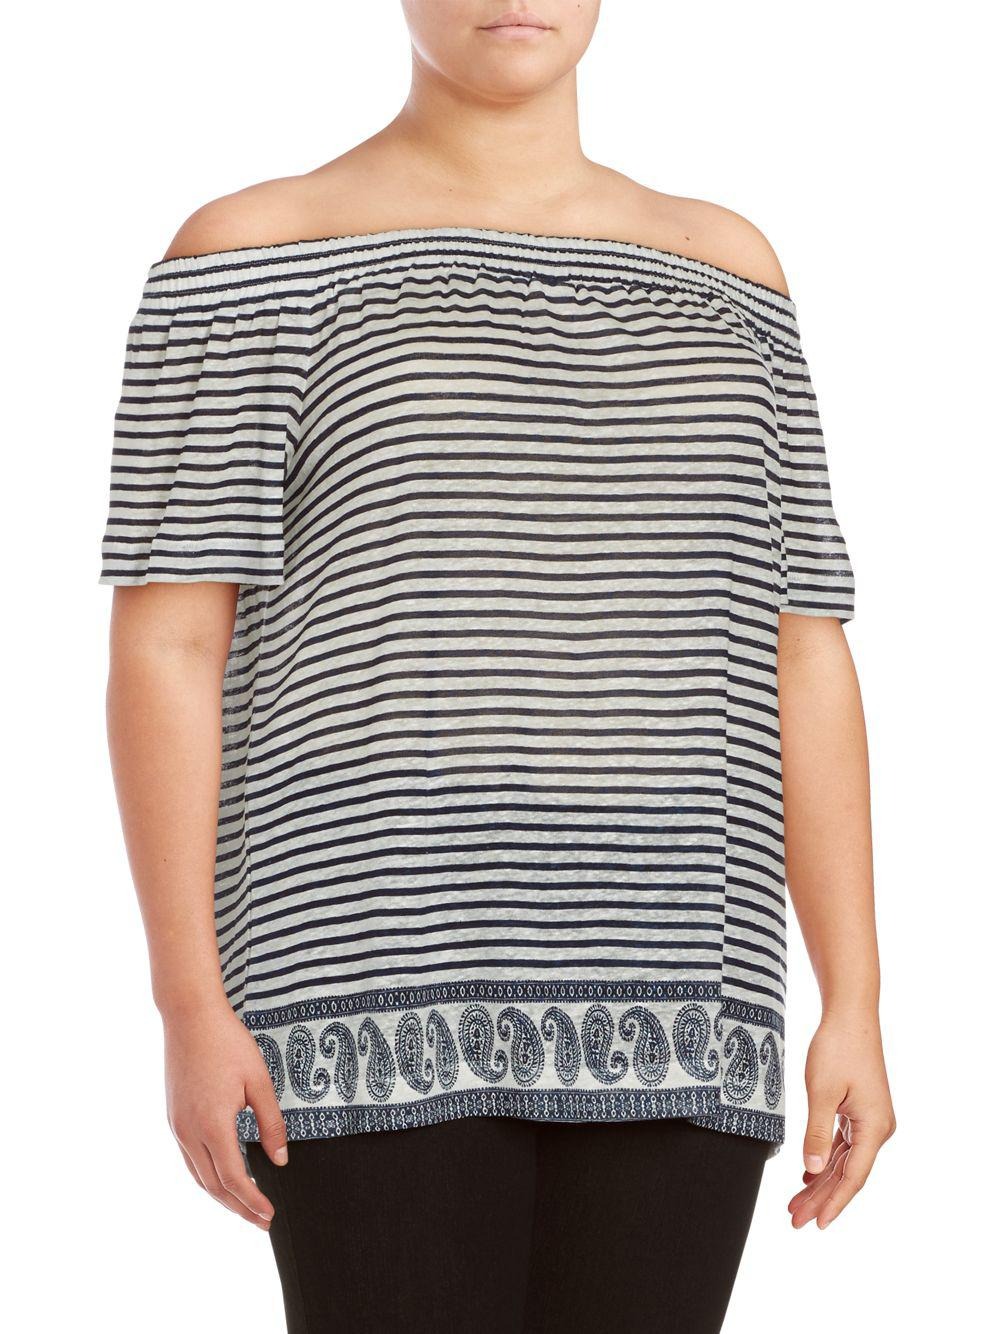 28e78cd1a8553 Vince Camuto Plus Size Striped Off-the-shoulder Top - Save 5% - Lyst